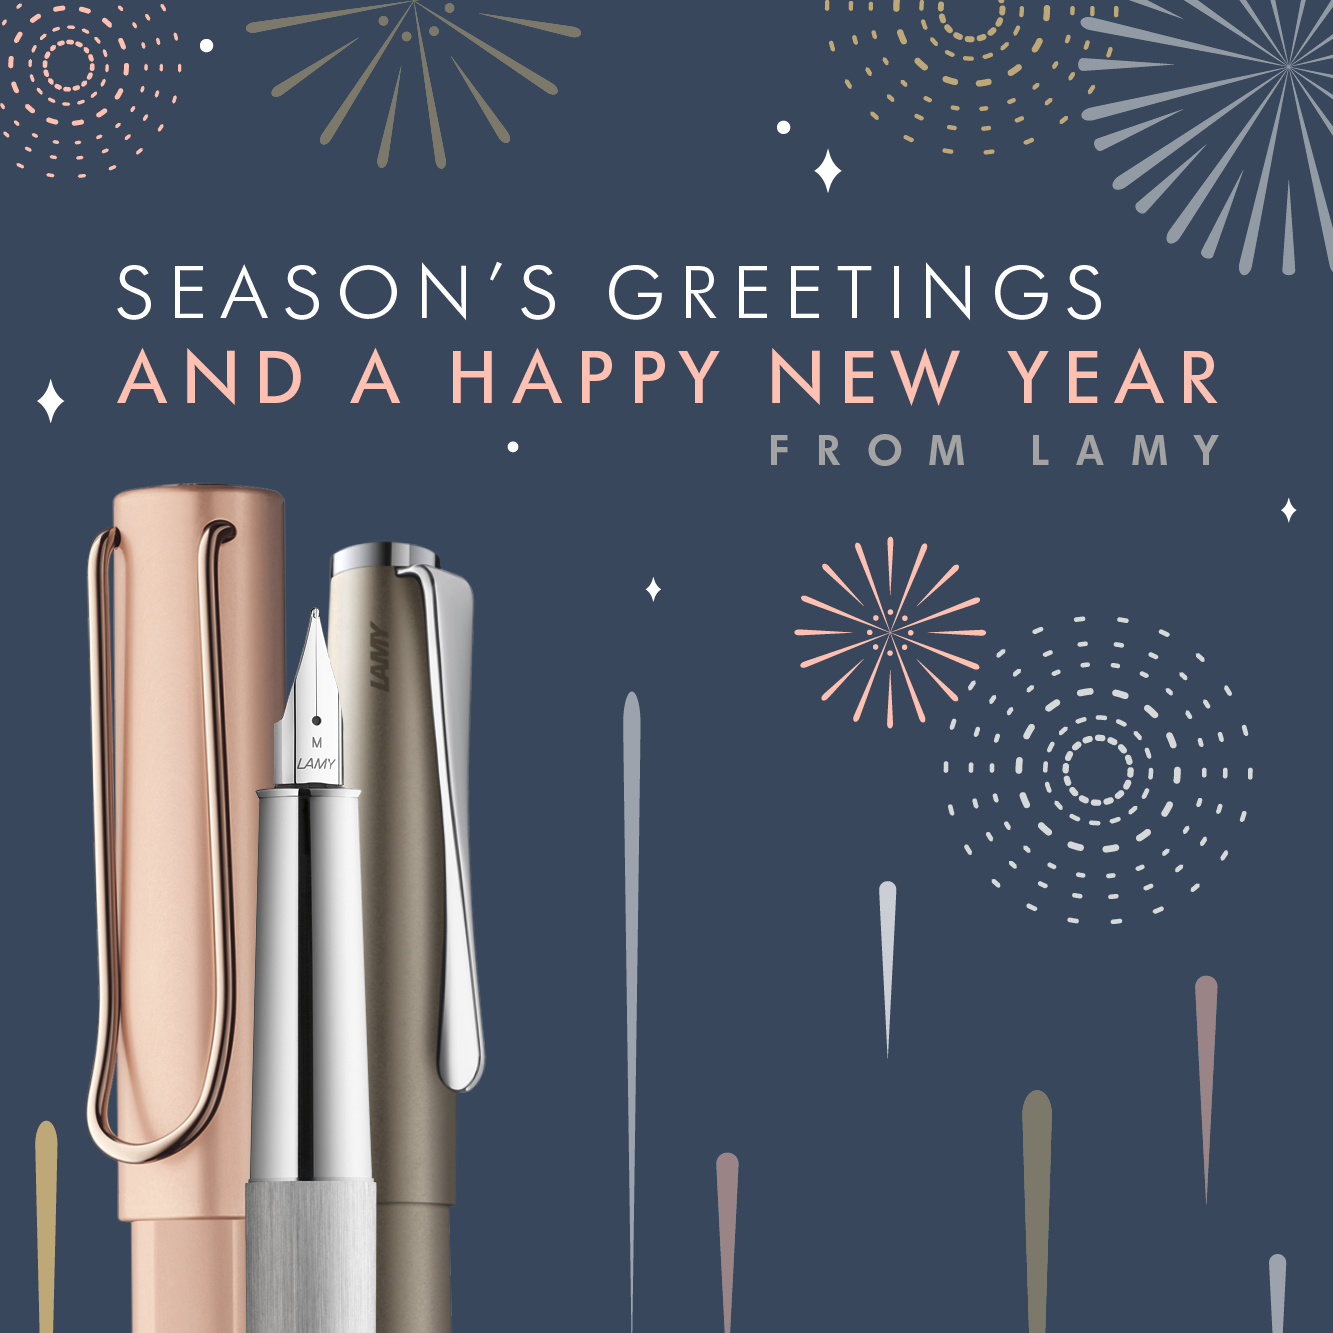 Season's Greetings and a Happy New Year from LAMY